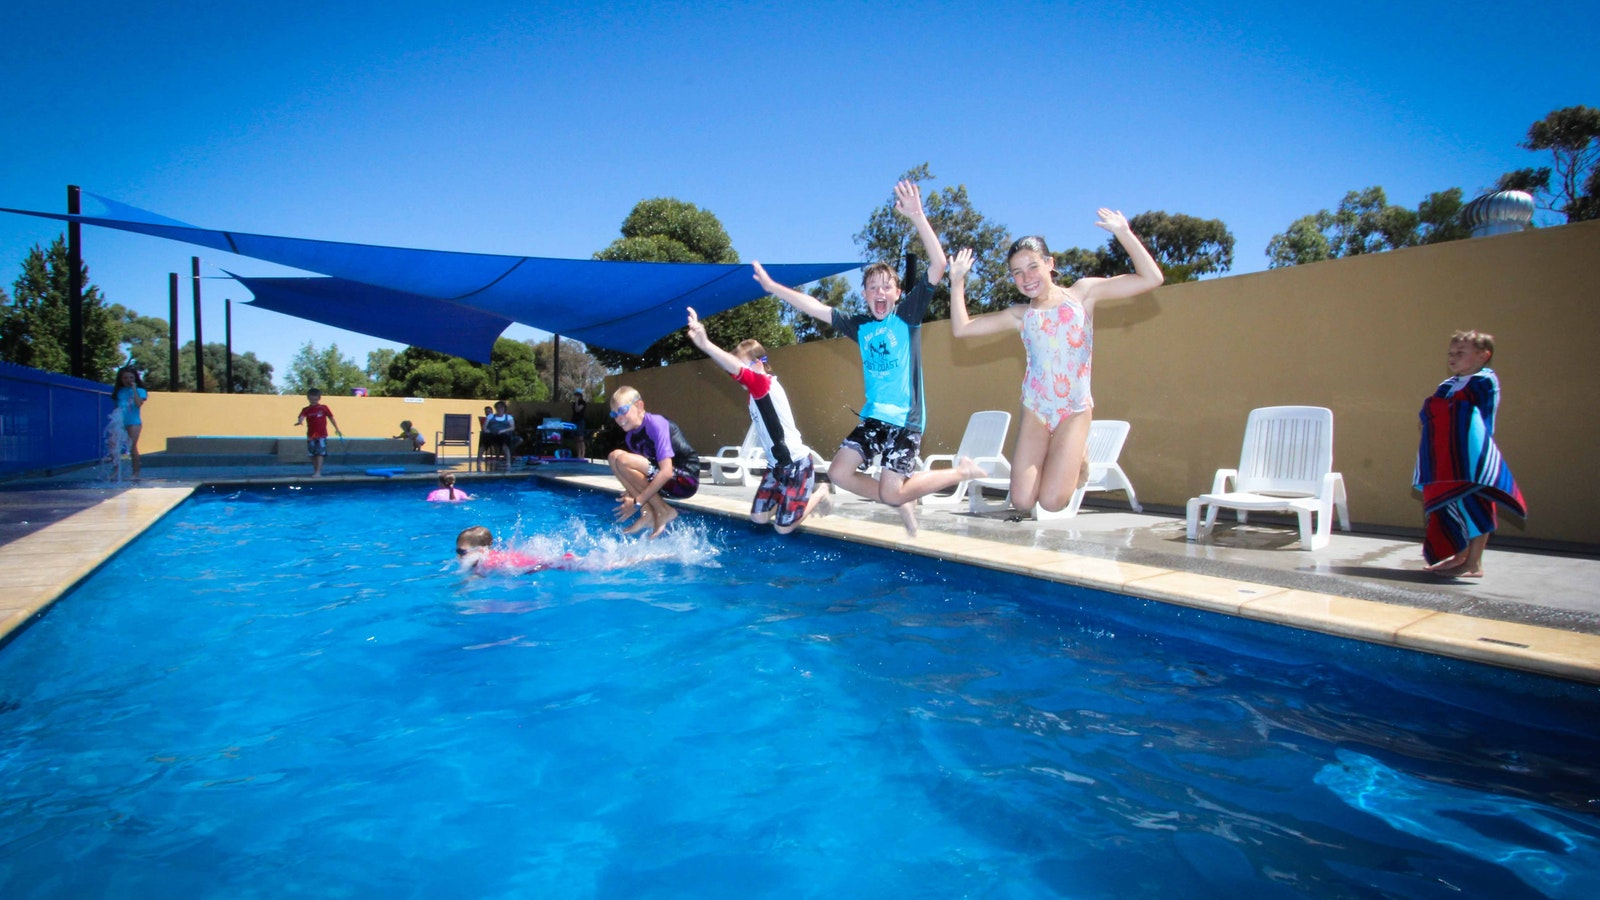 BIG4 Swan Hill solar heated pool